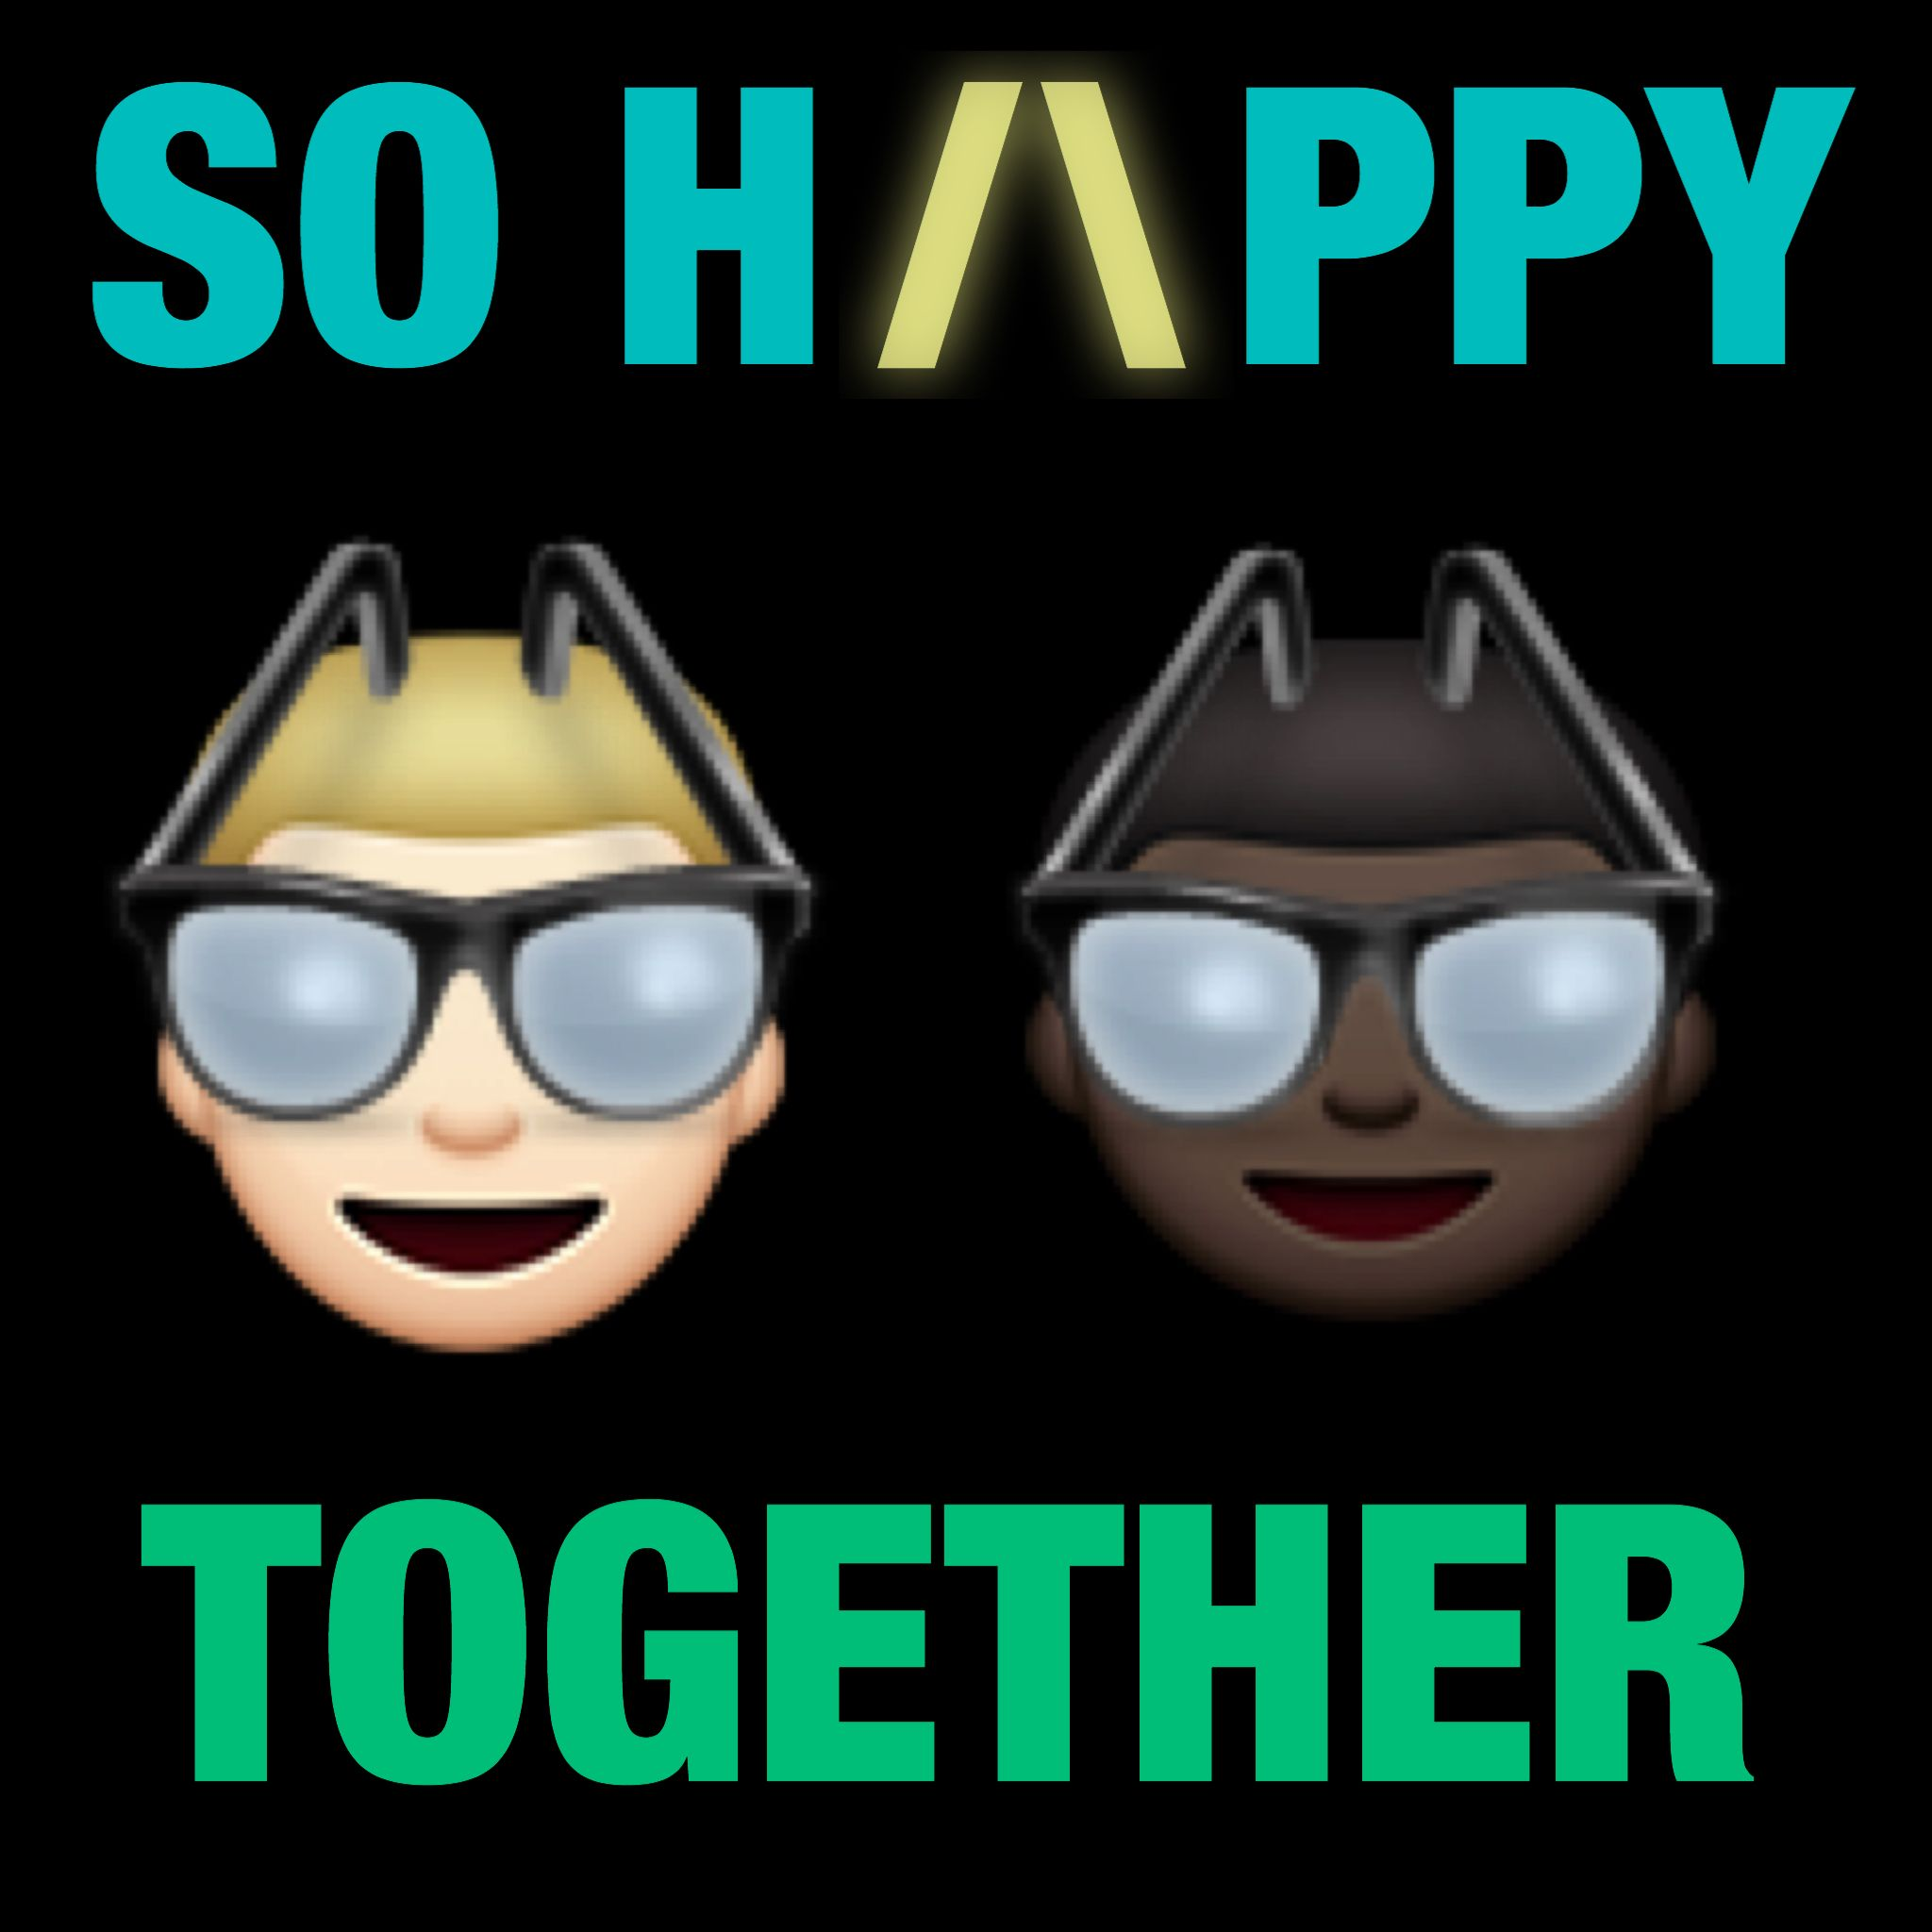 We need more emoticons wearing glasses! Wearing glasses